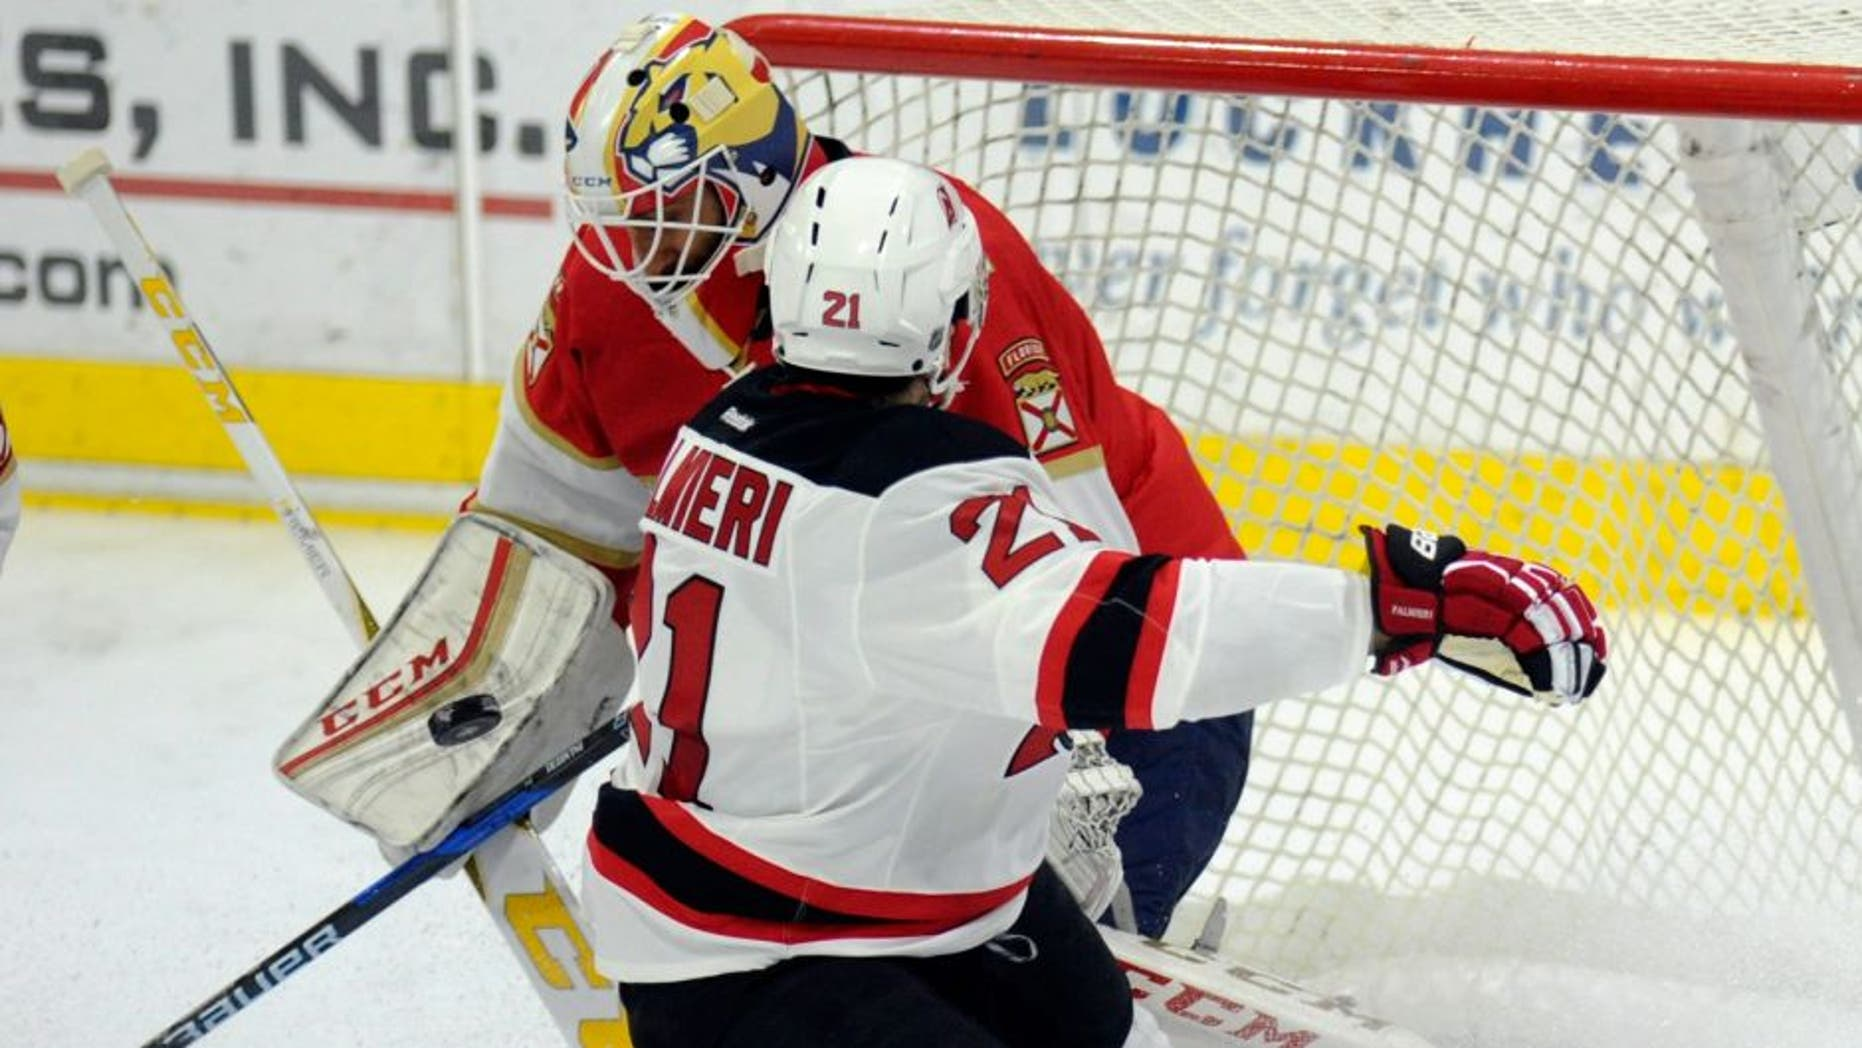 Florida Panthers goalie Roberto Luongo (1) deflects a shot by New Jersey Devils right wing Kyle Palmieri (21) during the first period of an NHL preseason hockey game, Saturday, Oct. 8, 2016, in West Point, N.Y. (AP Photo/Hans Pennink)